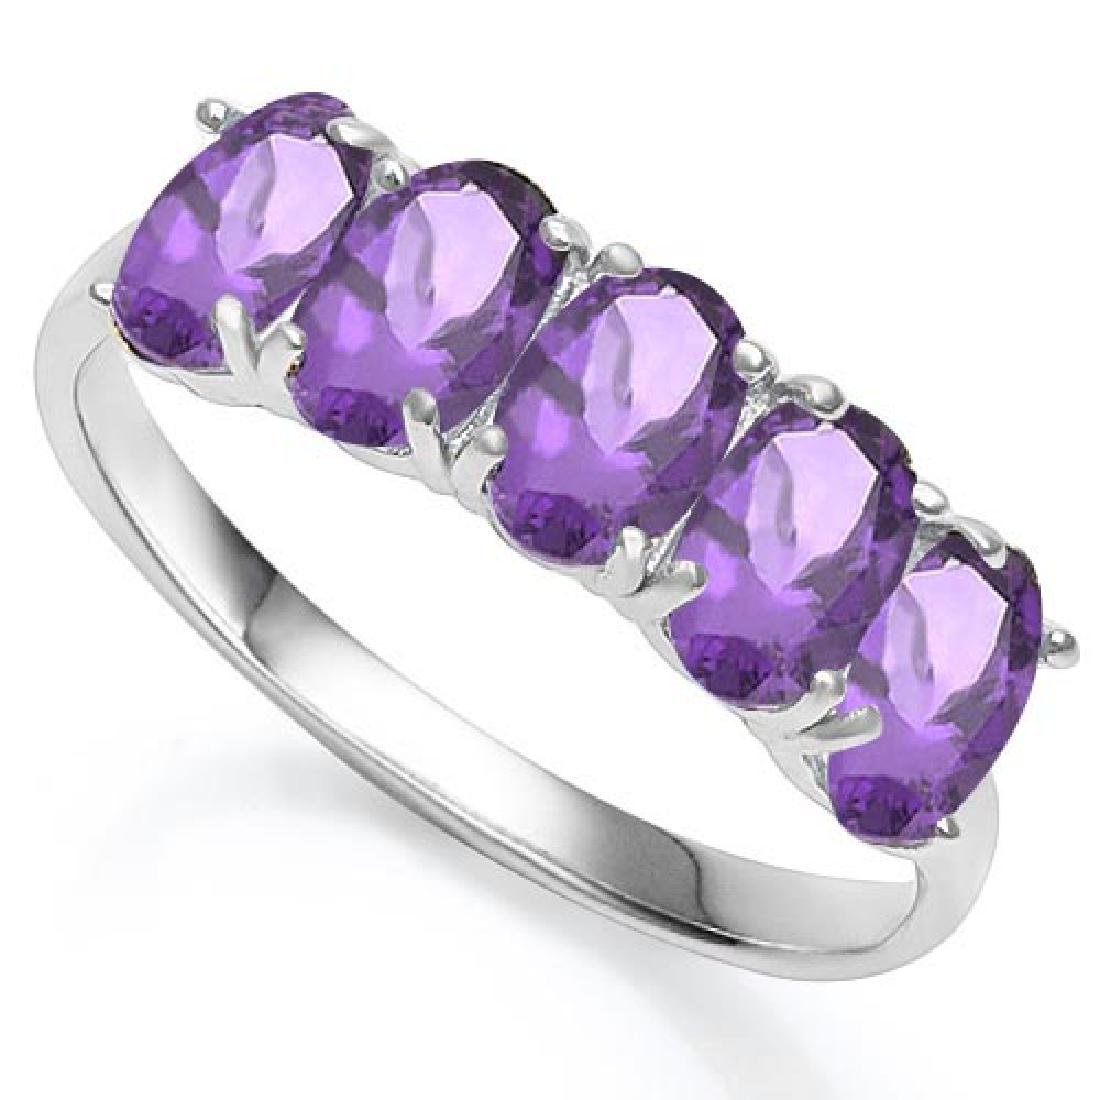 2.1 CTW GENUINE AMETHYST 10KT SOLID WHITE GOLD RING